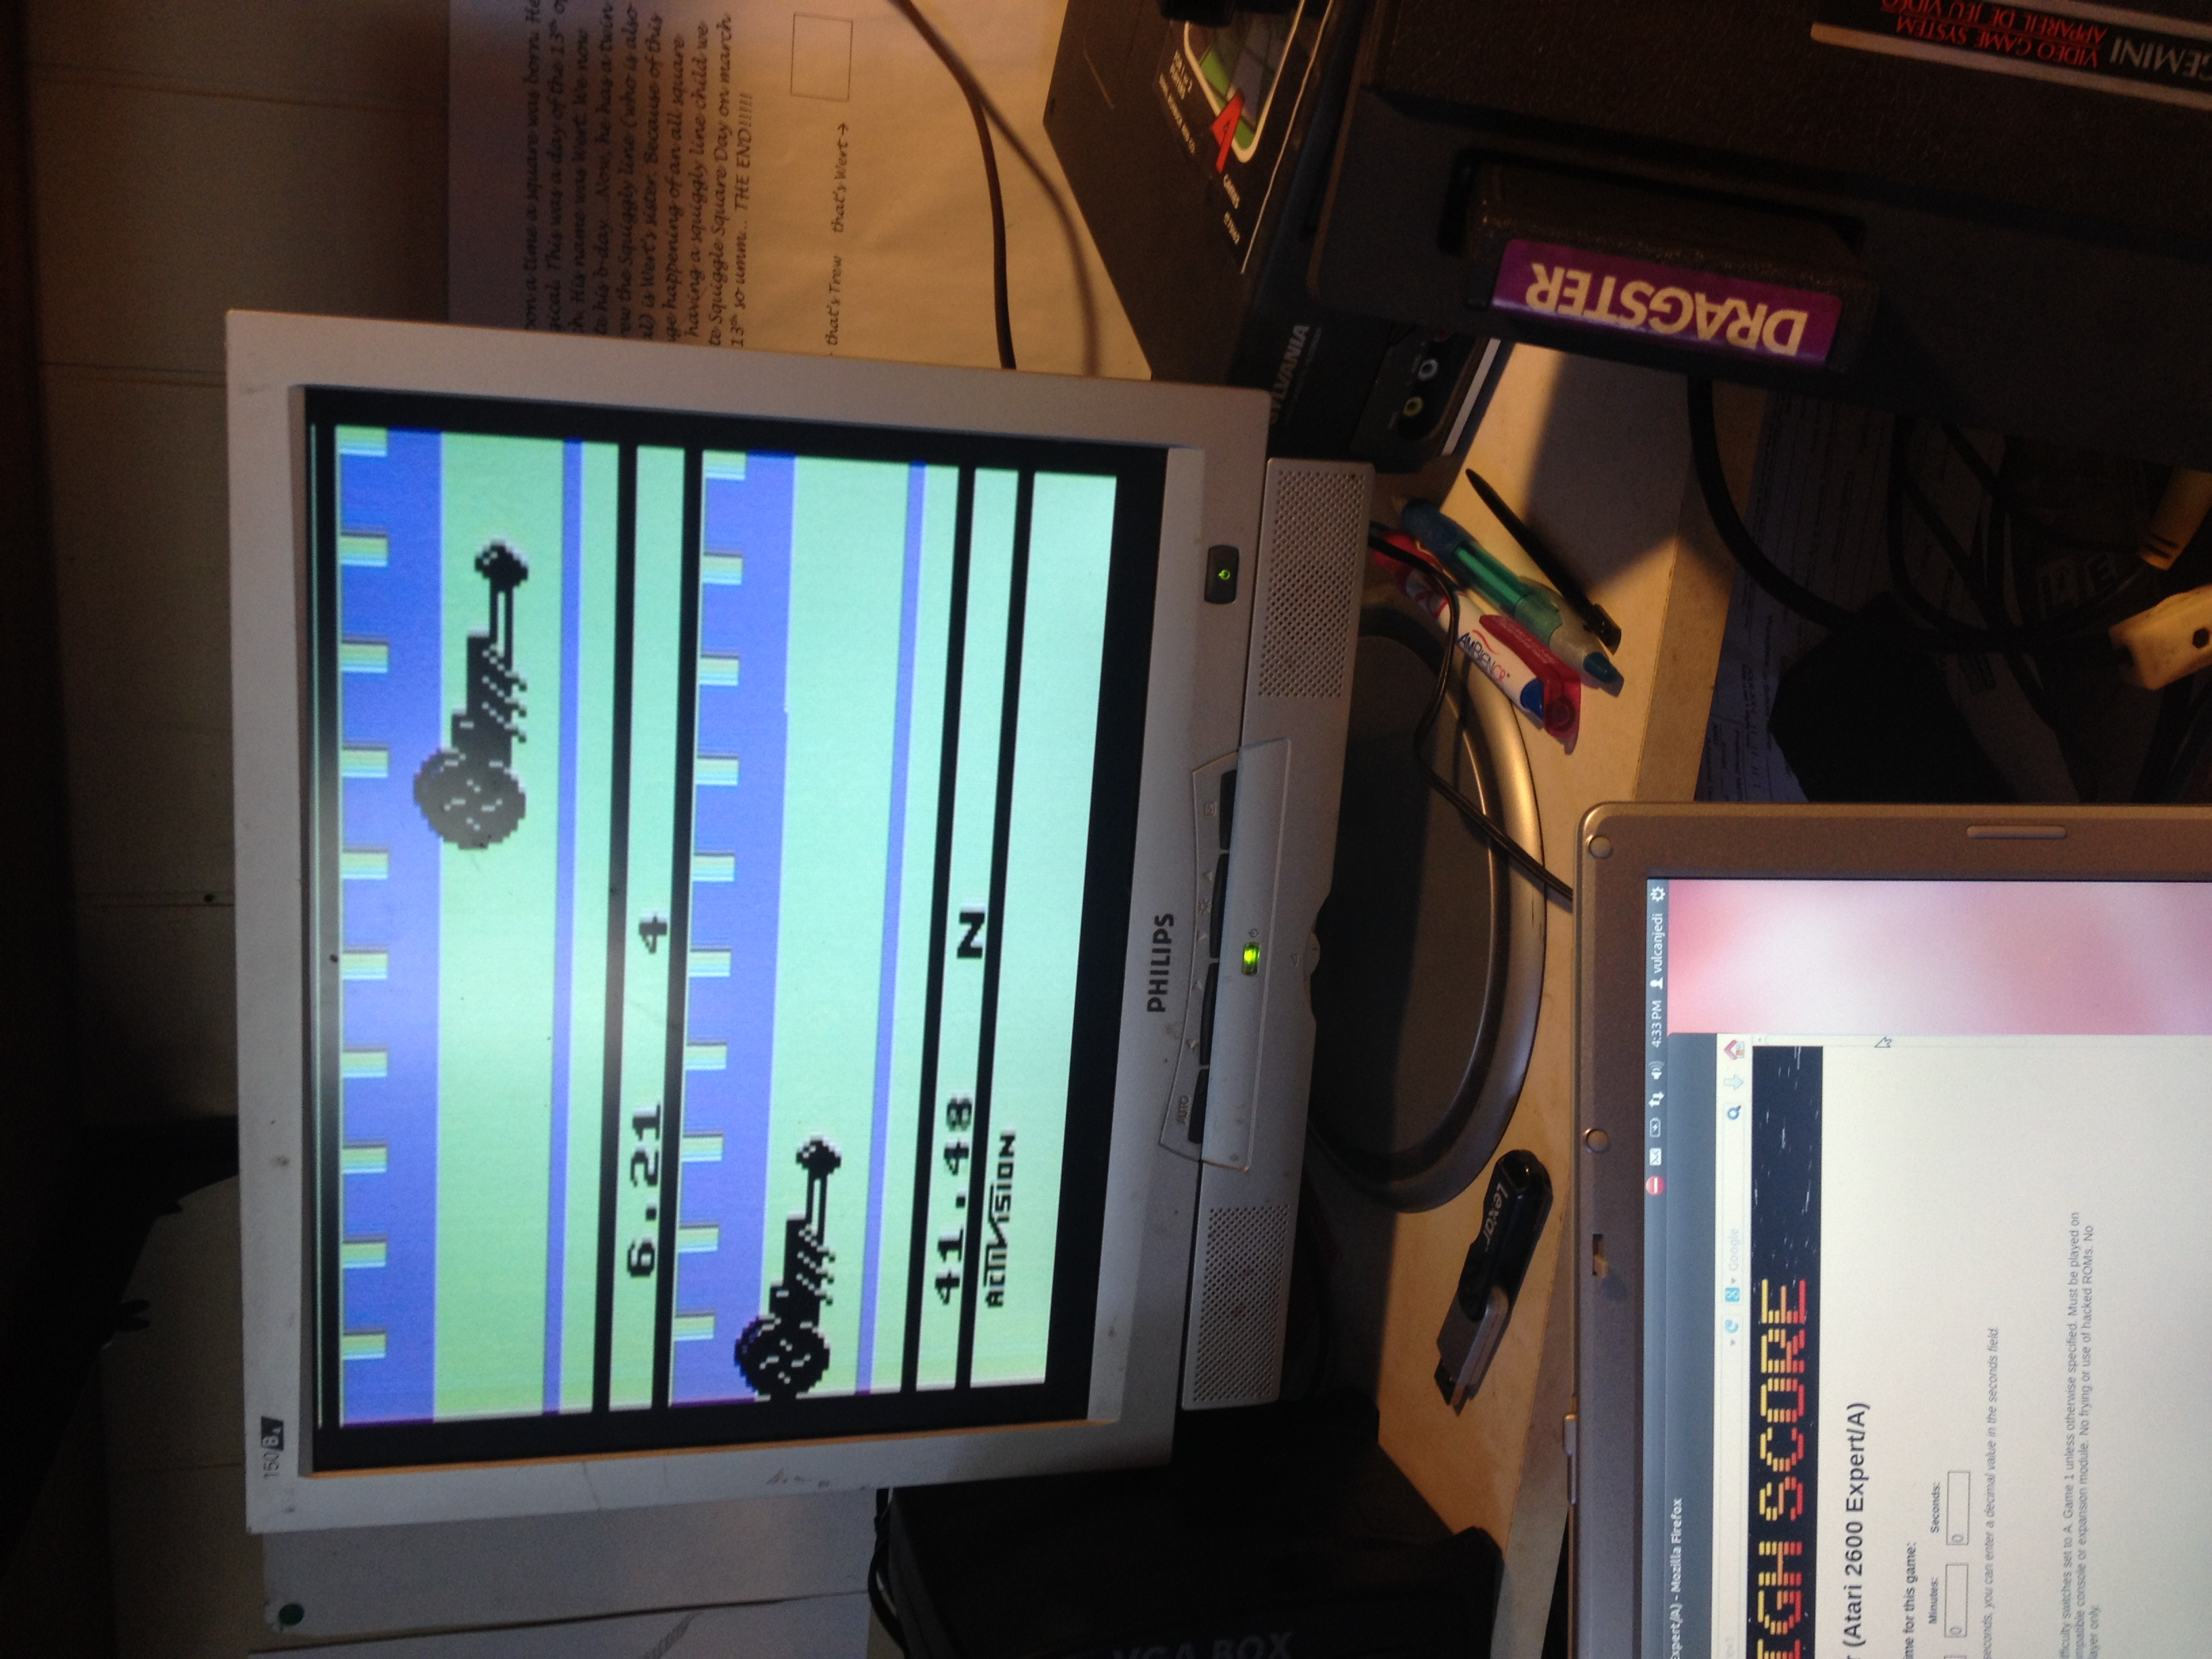 vulcanjedi: Dragster (Atari 2600 Expert/A) 0:00:06.21 points on 2014-04-05 15:40:36